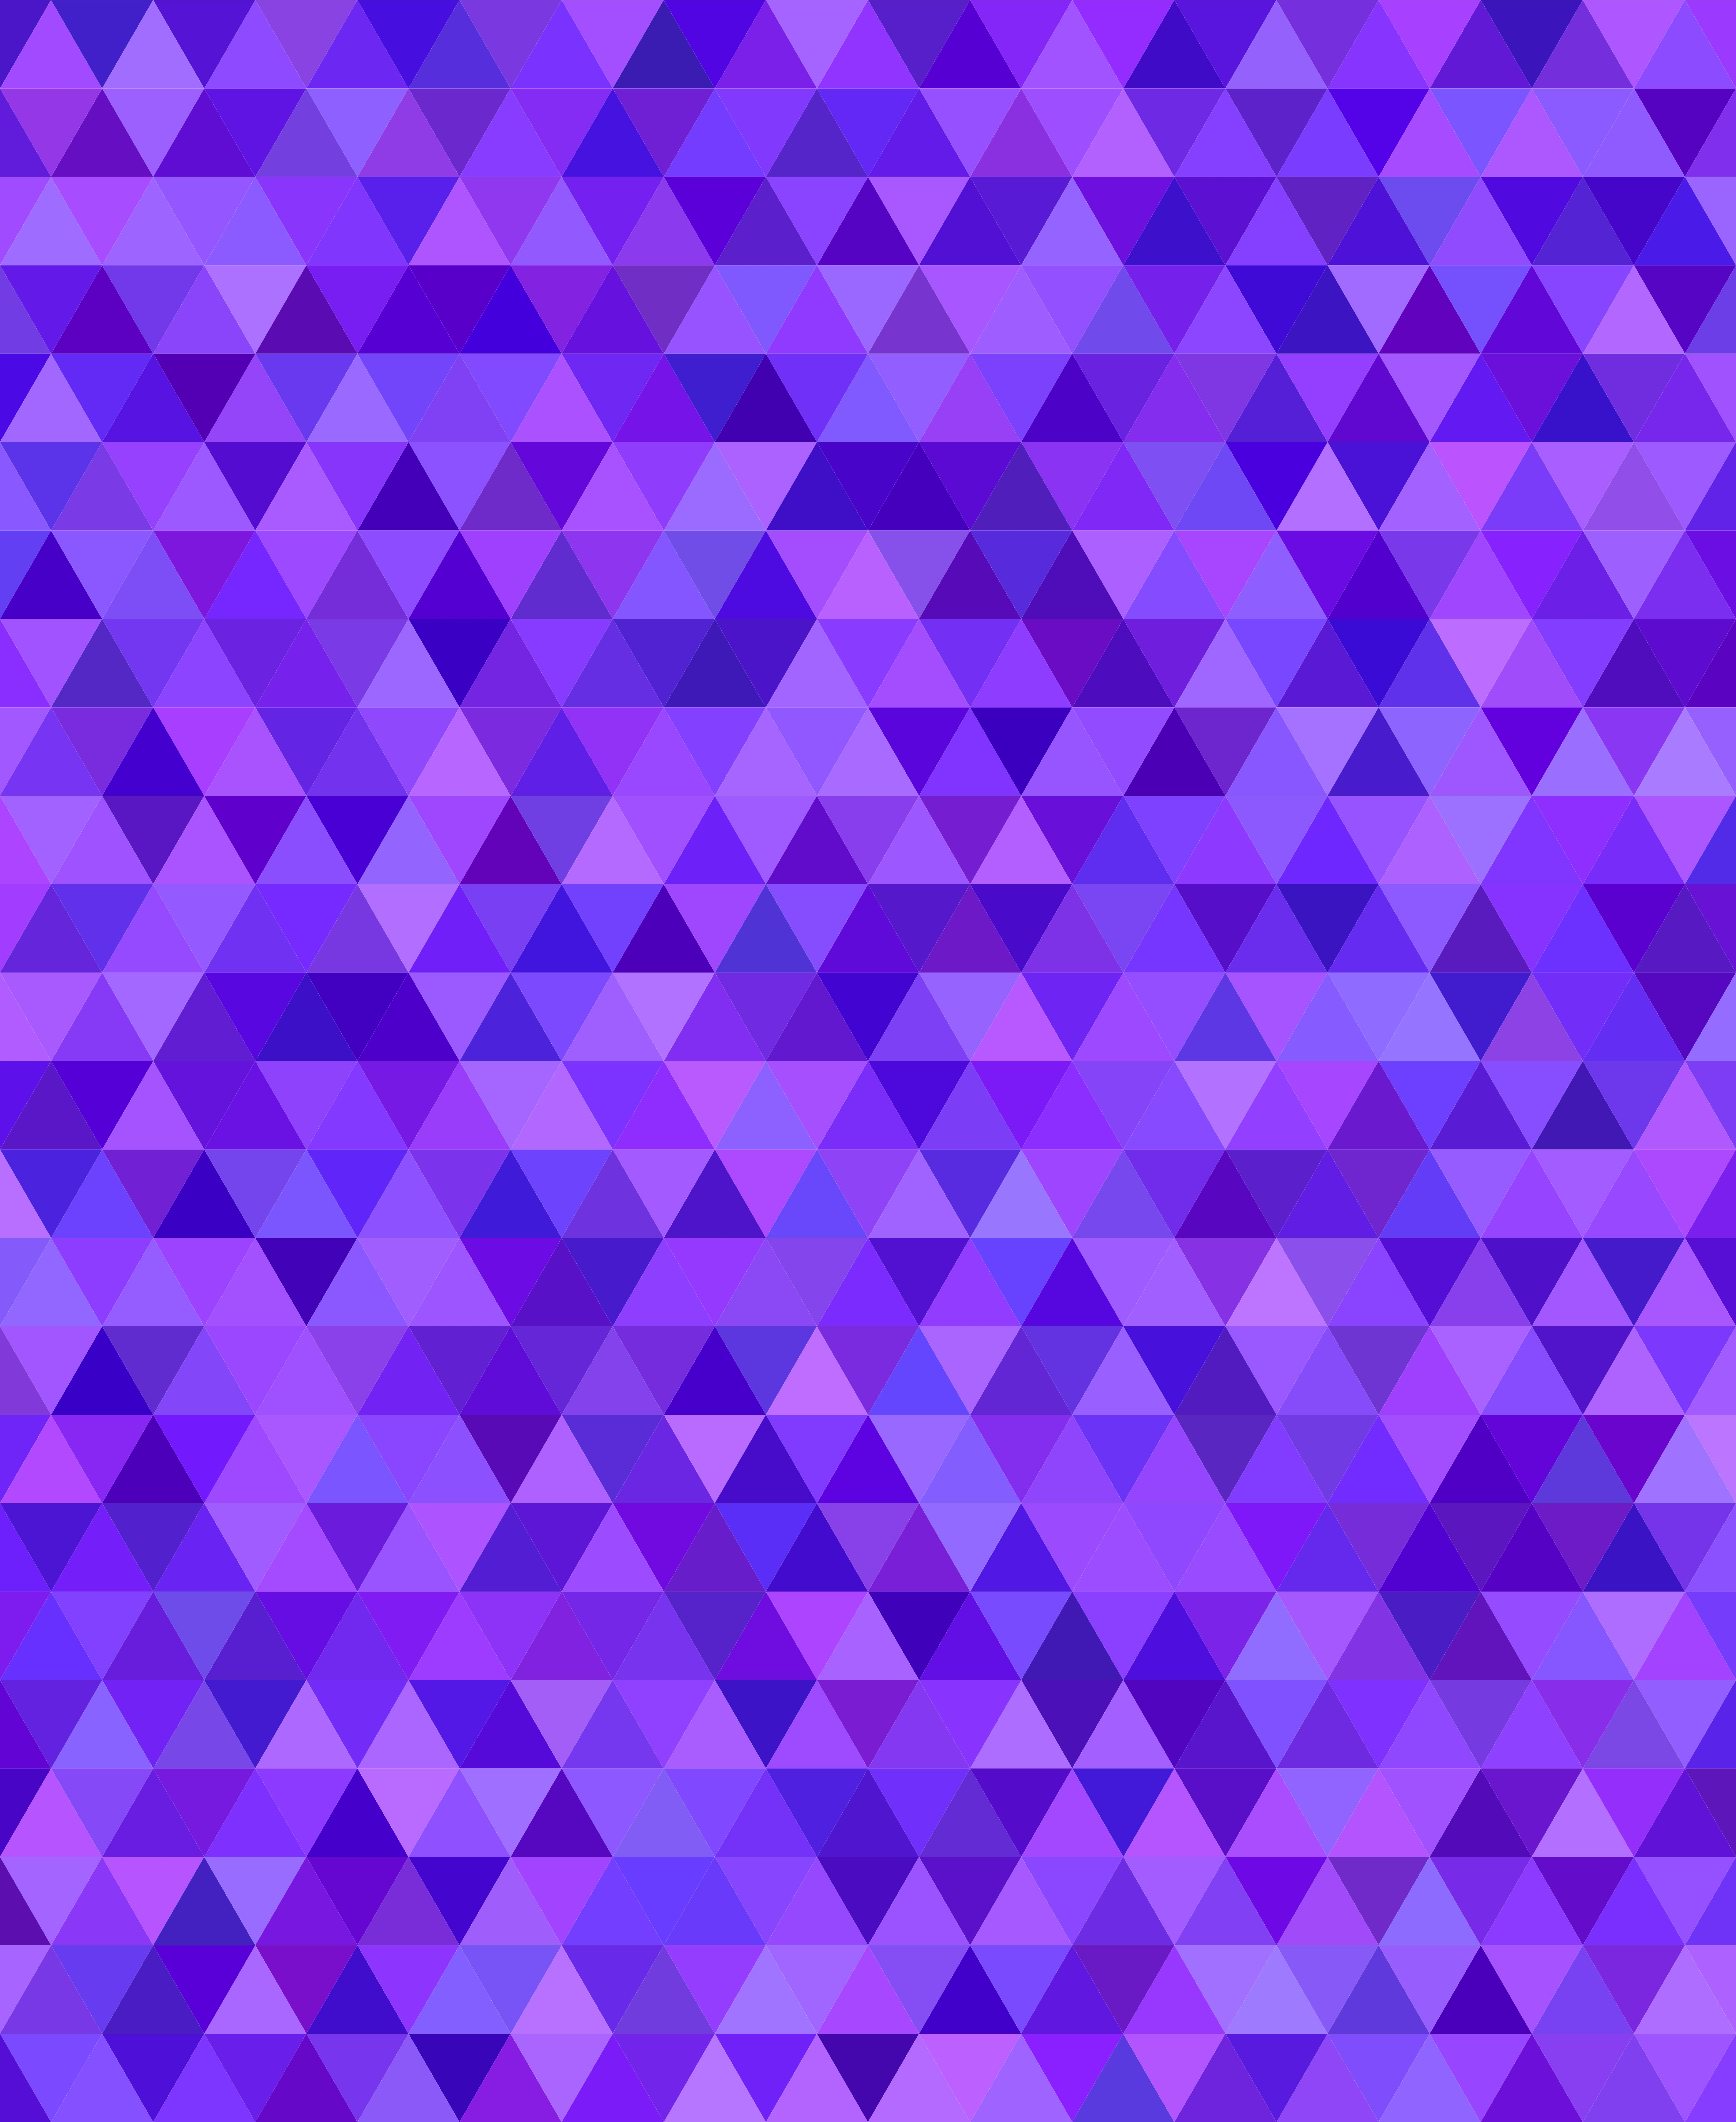 59326 download wallpaper Textures, Texture, Triangles, Purple, Violet, Lilac, Mosaic screensavers and pictures for free